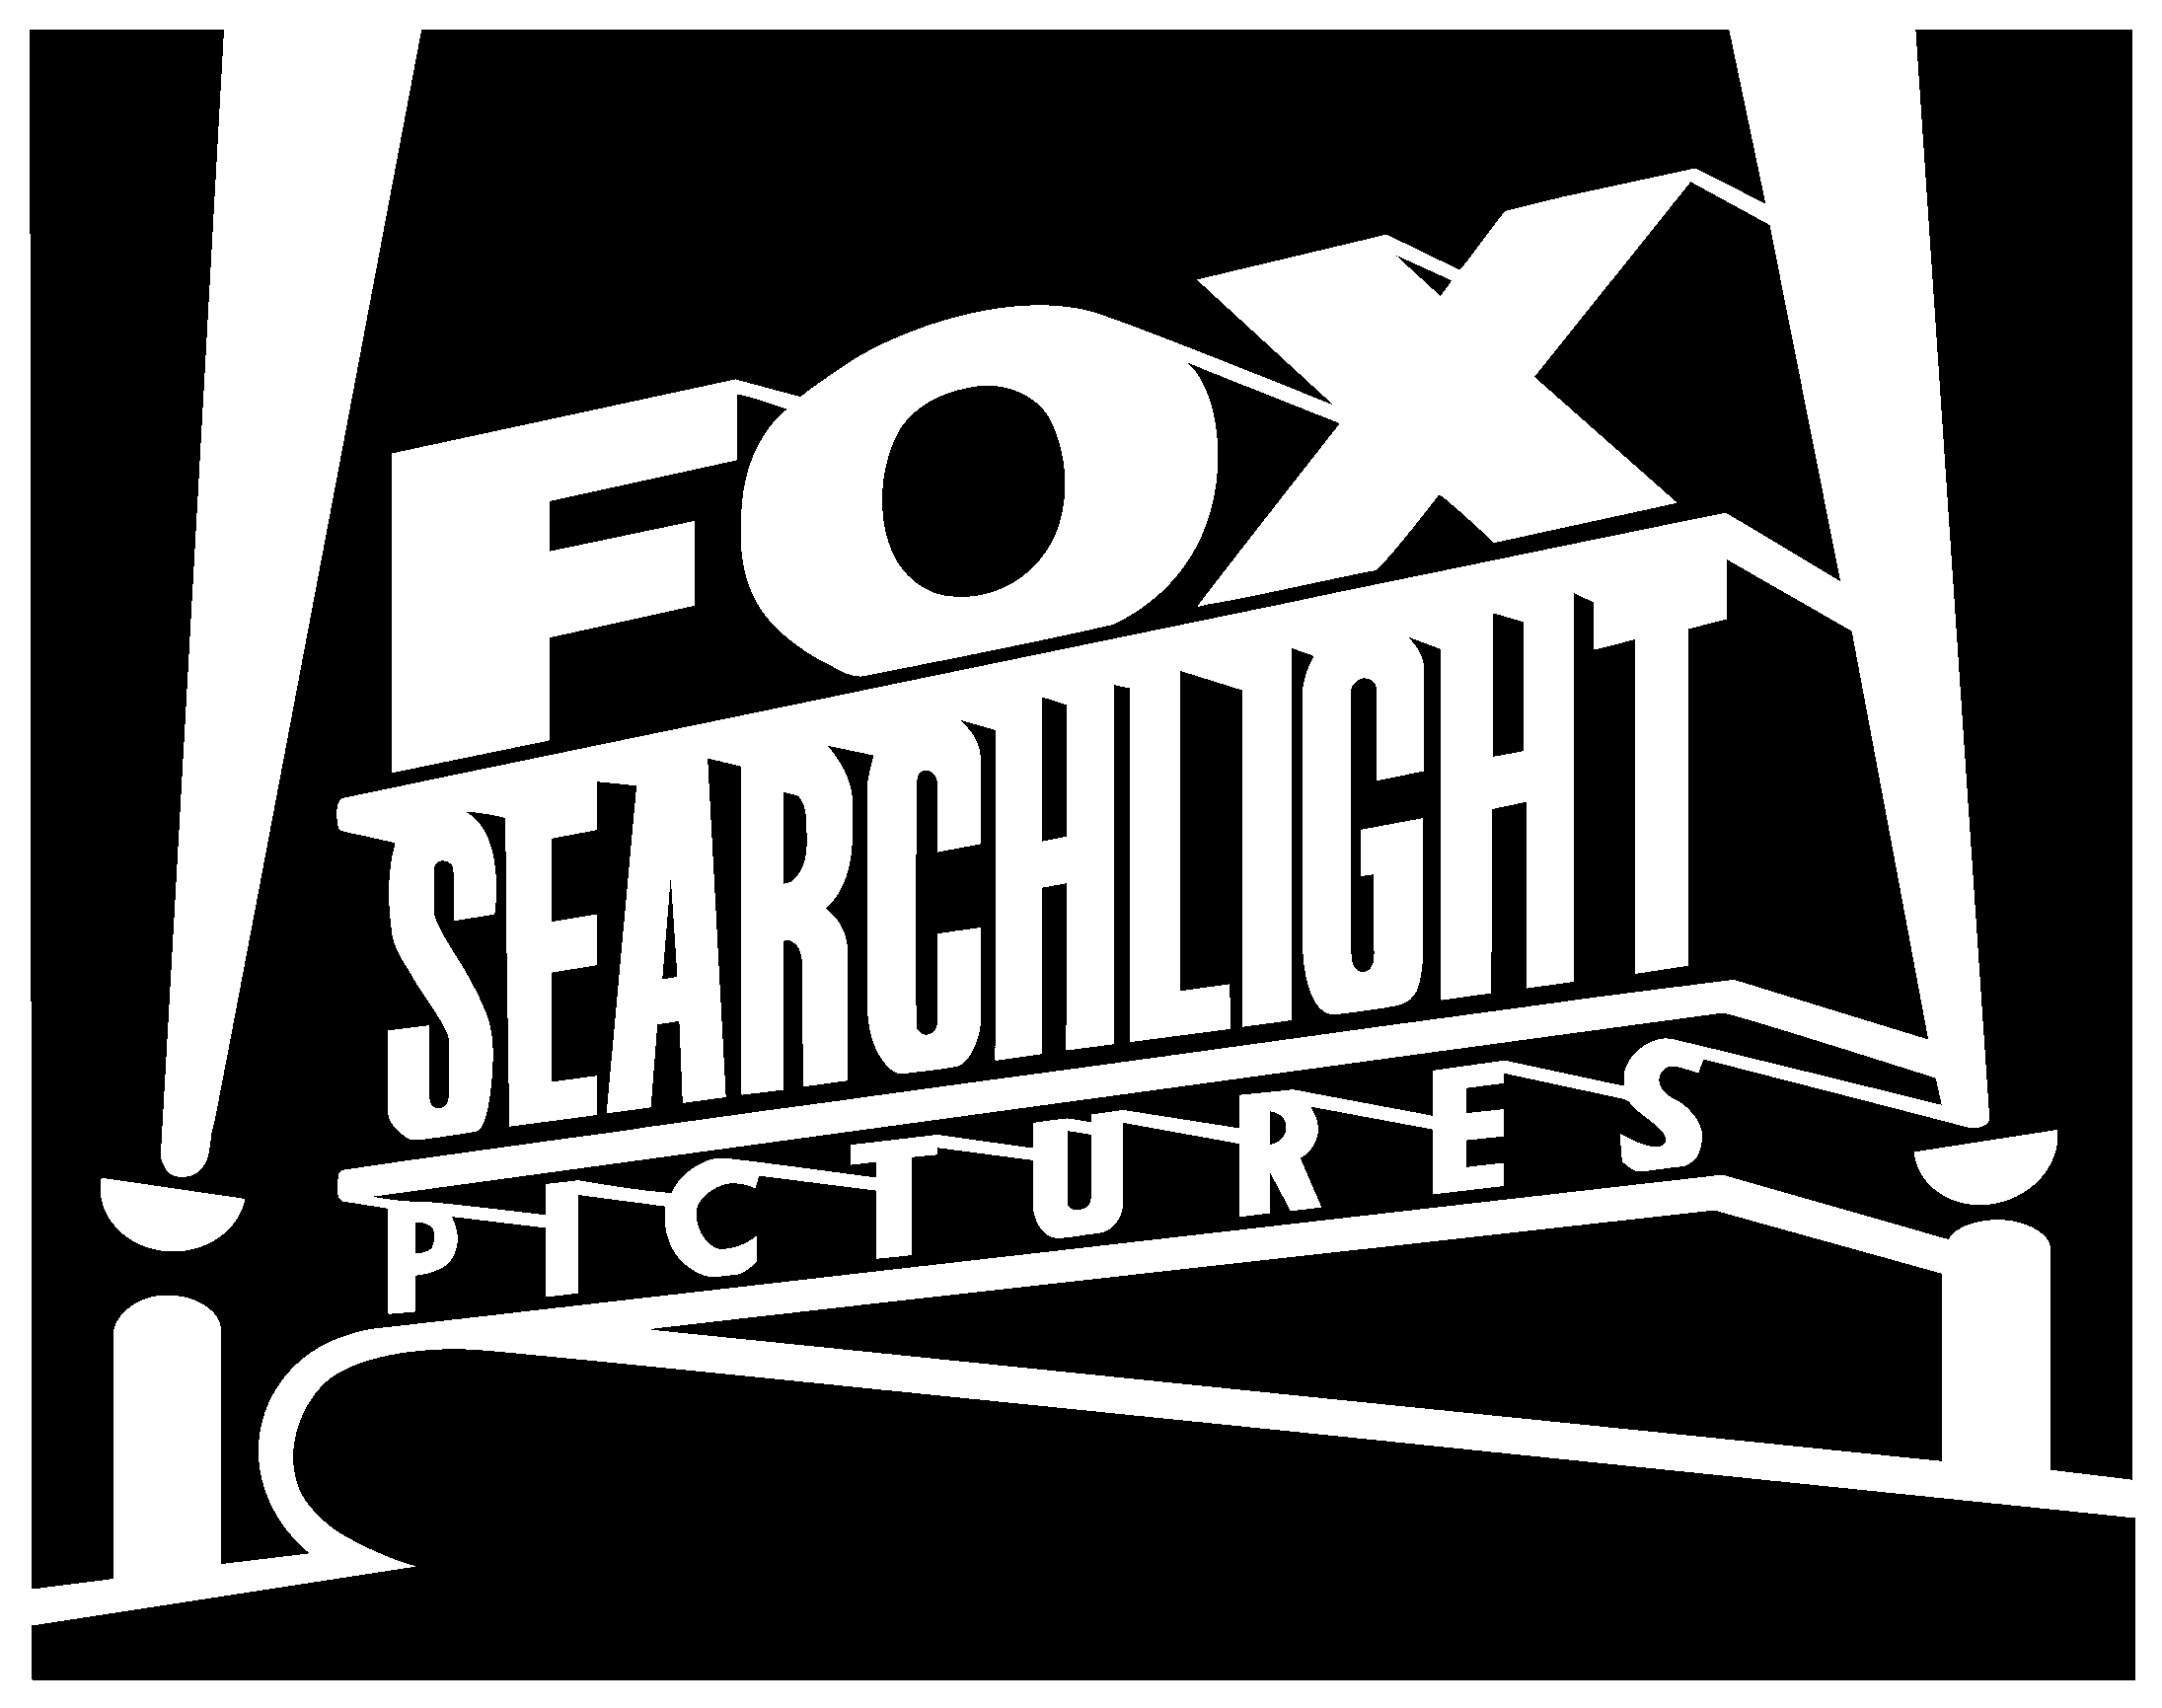 Fox-searchlight-pictures_logo